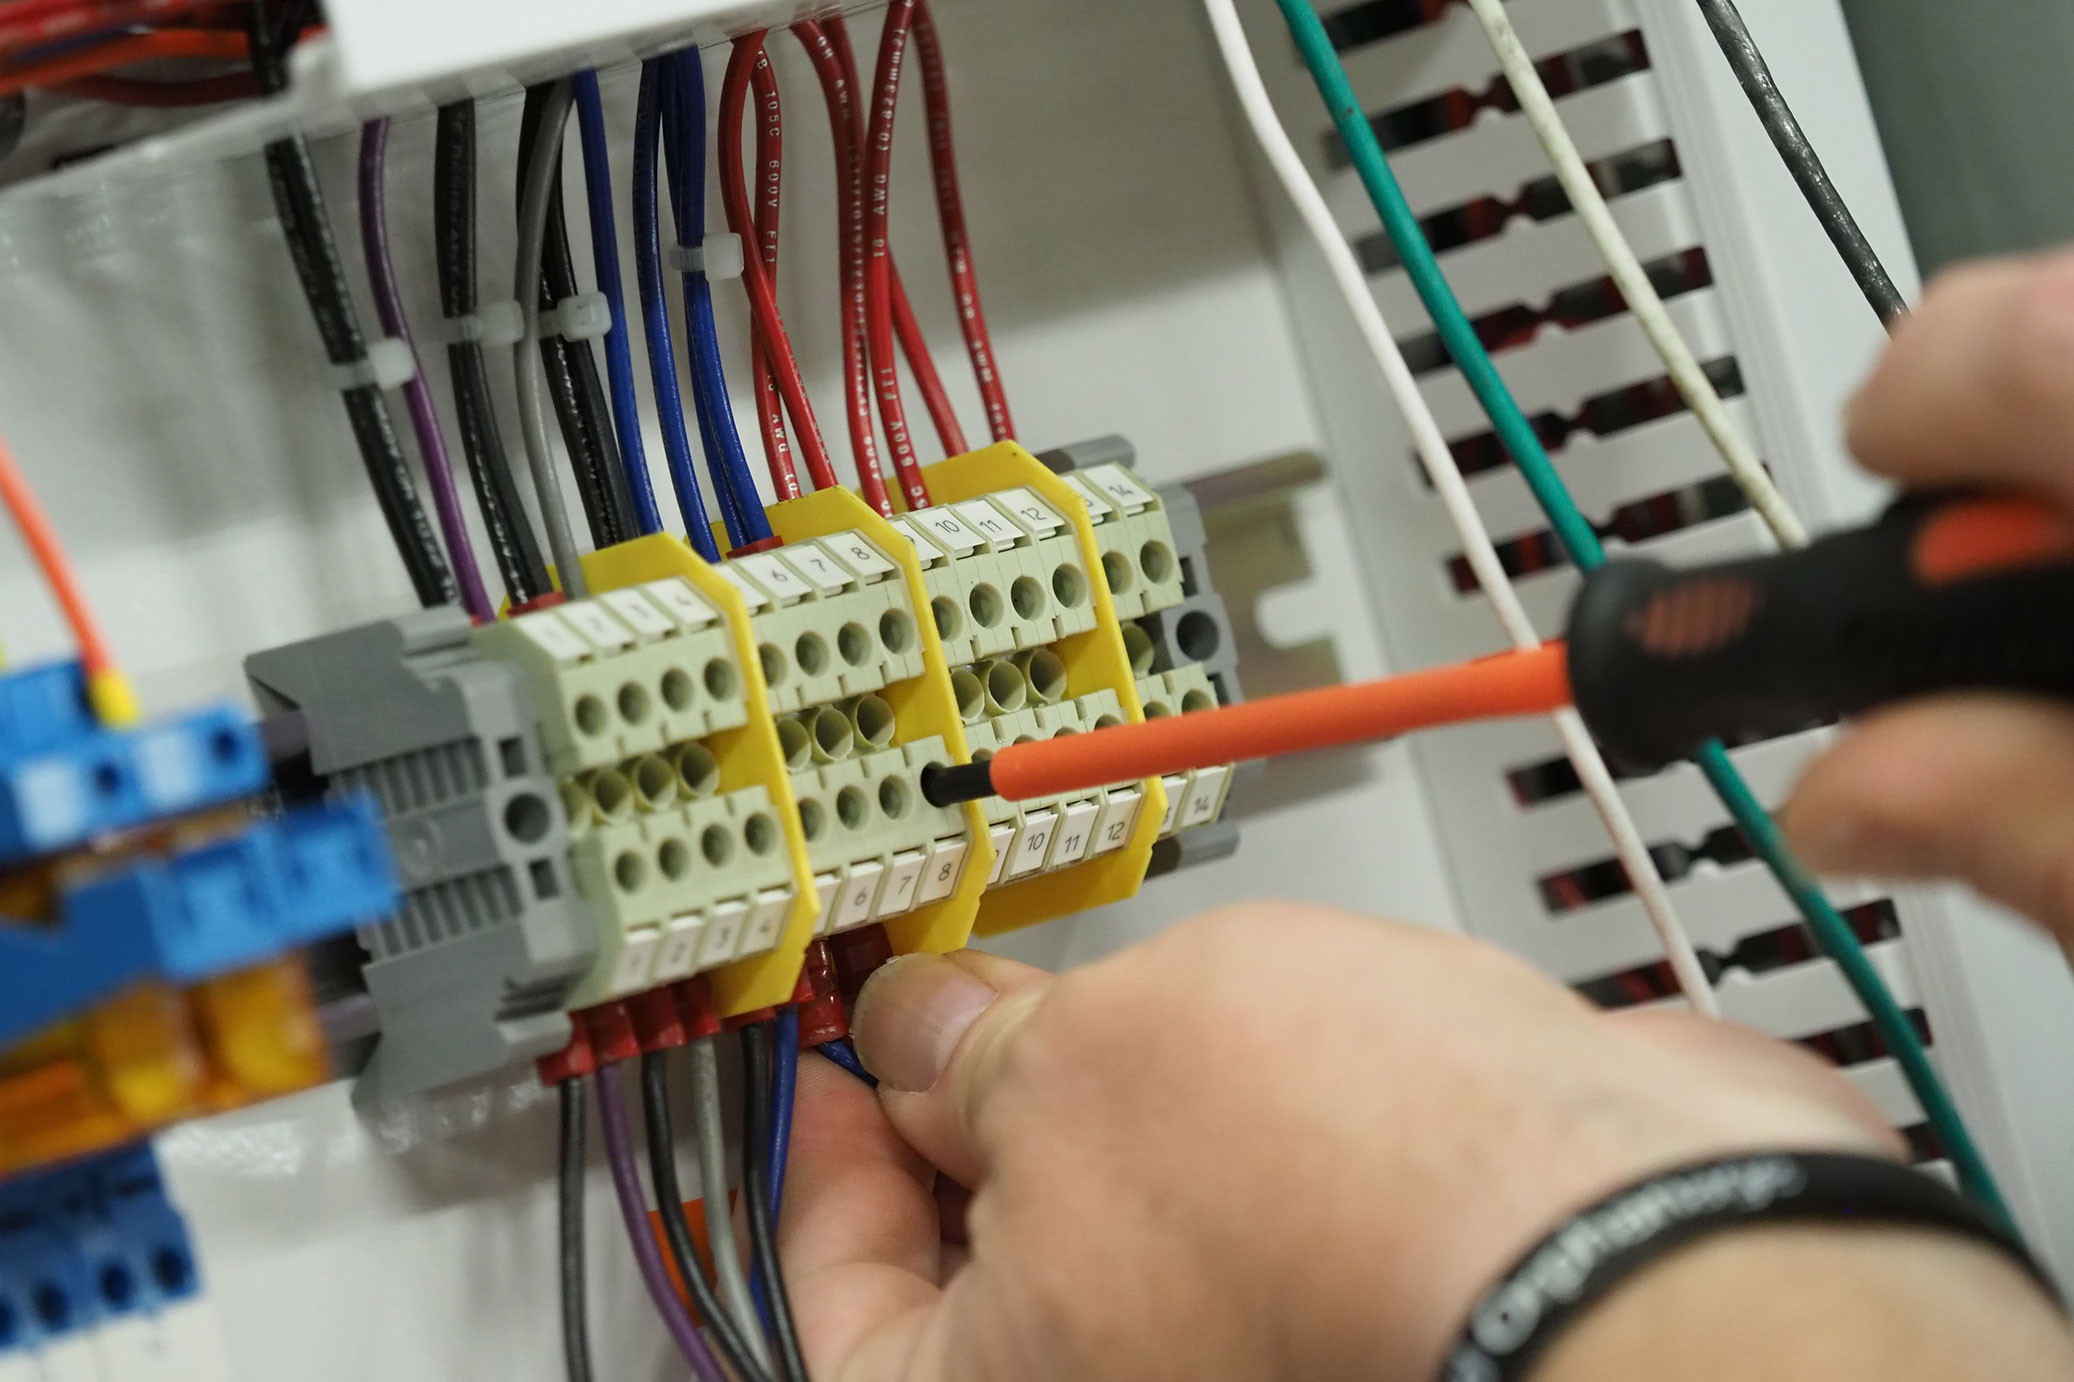 Control panel circuits